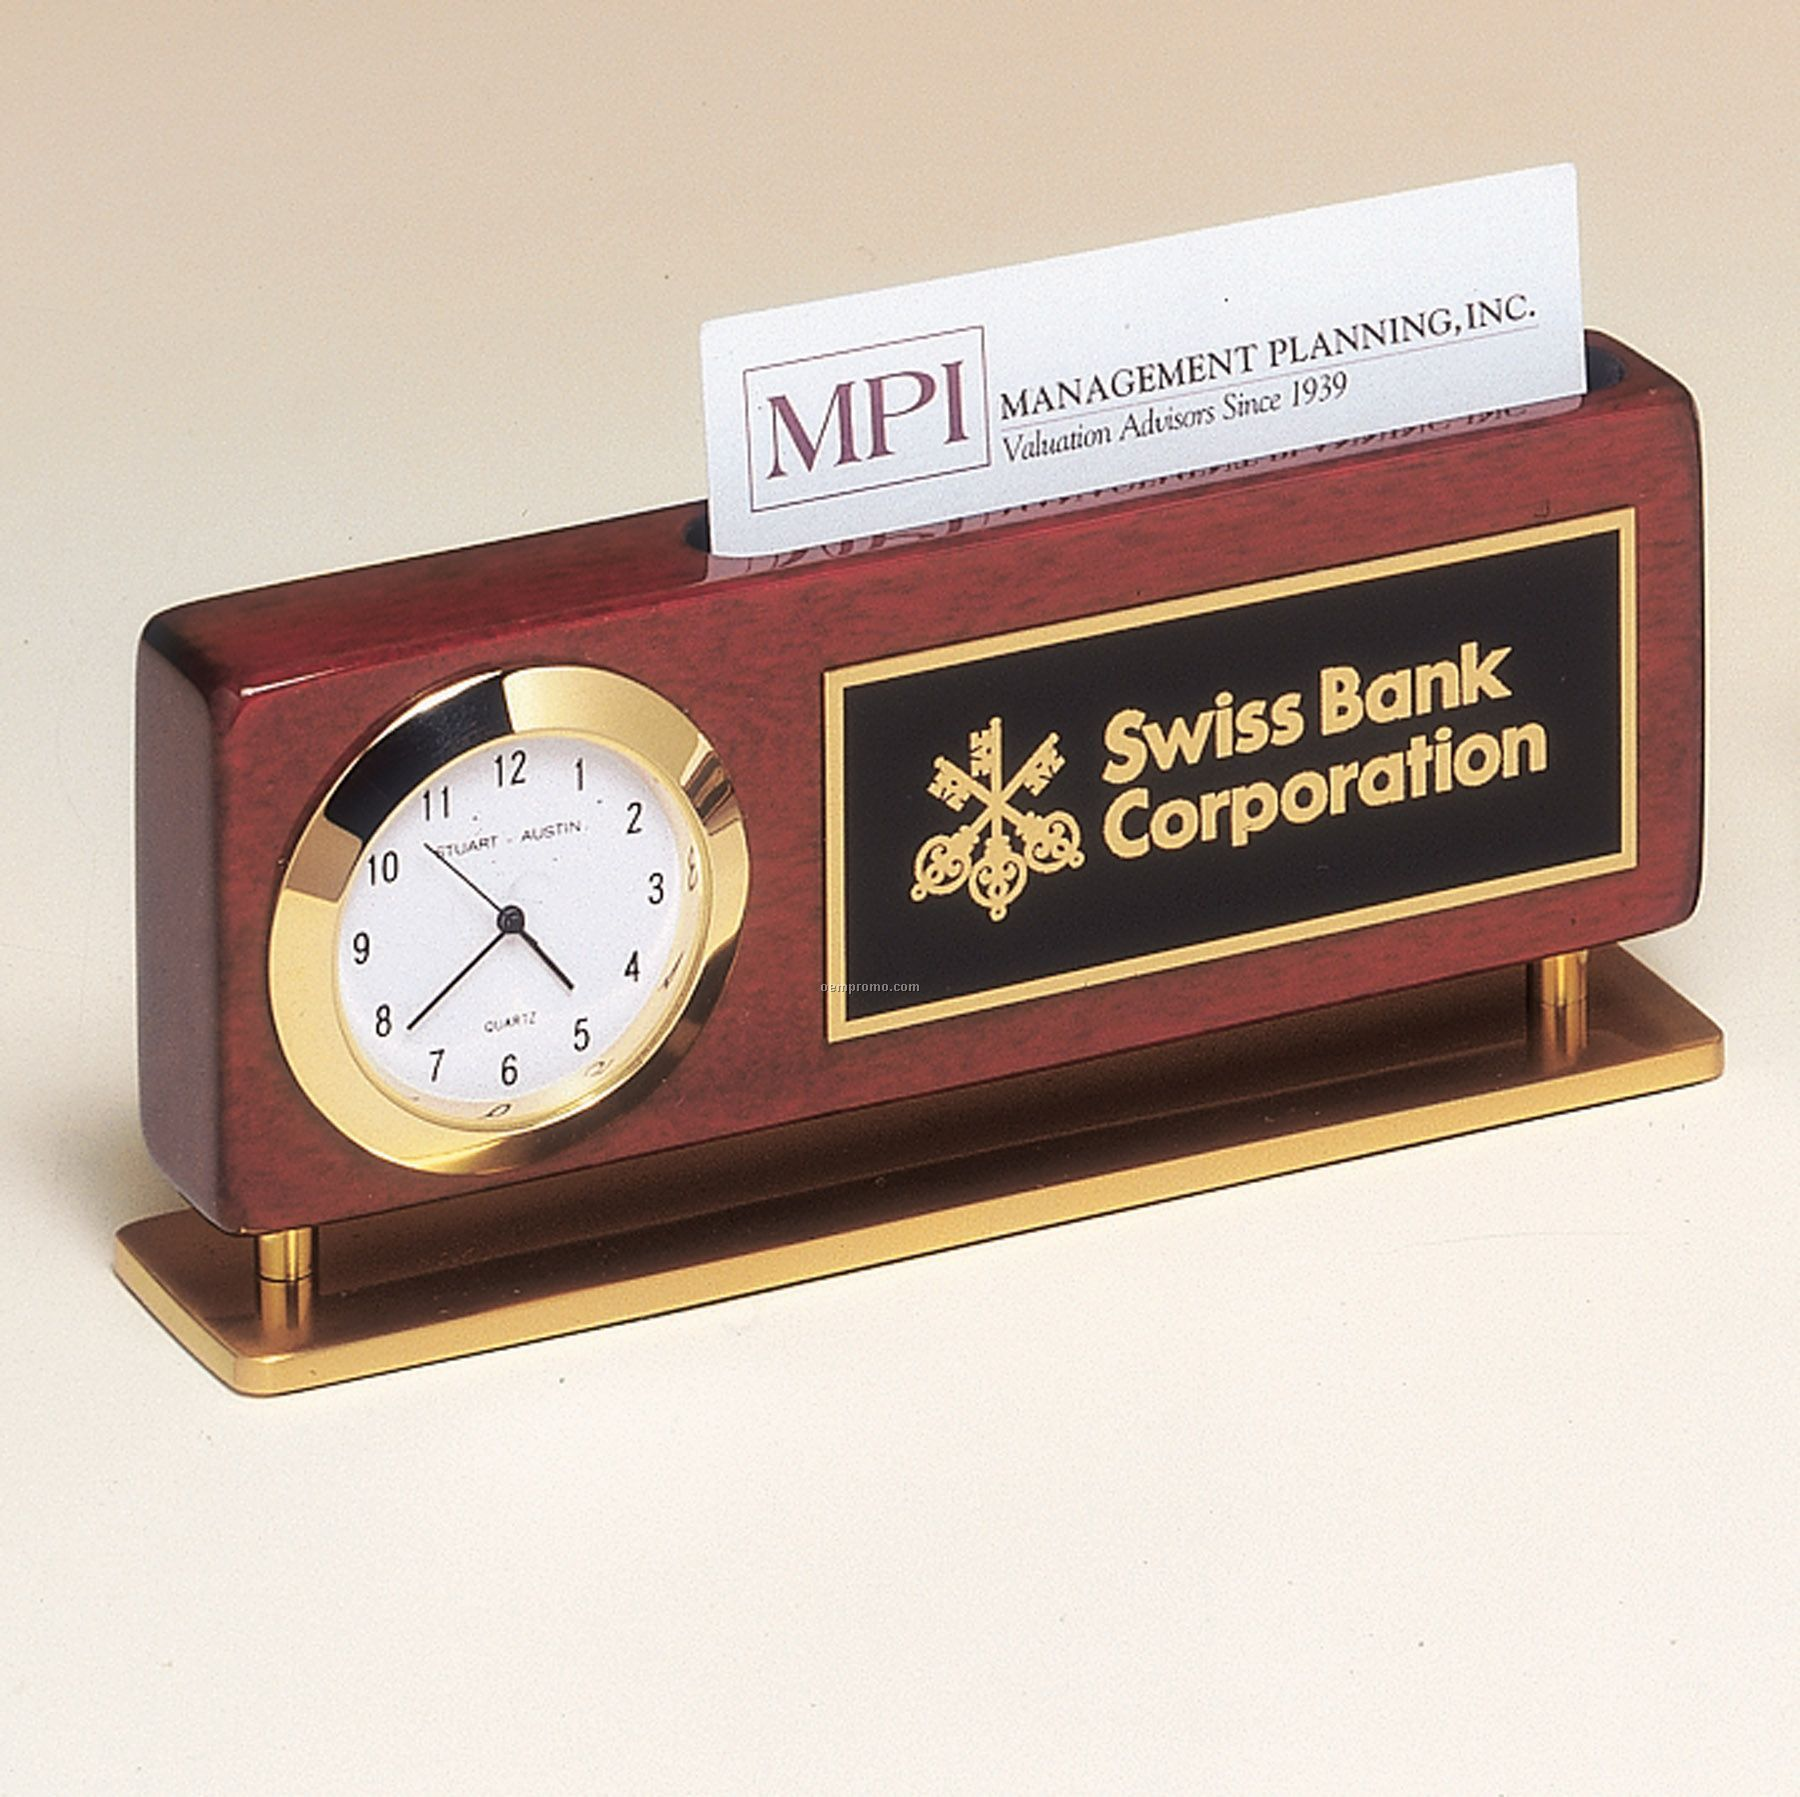 Rosewood Piano Finish Clock With Business Card Holder